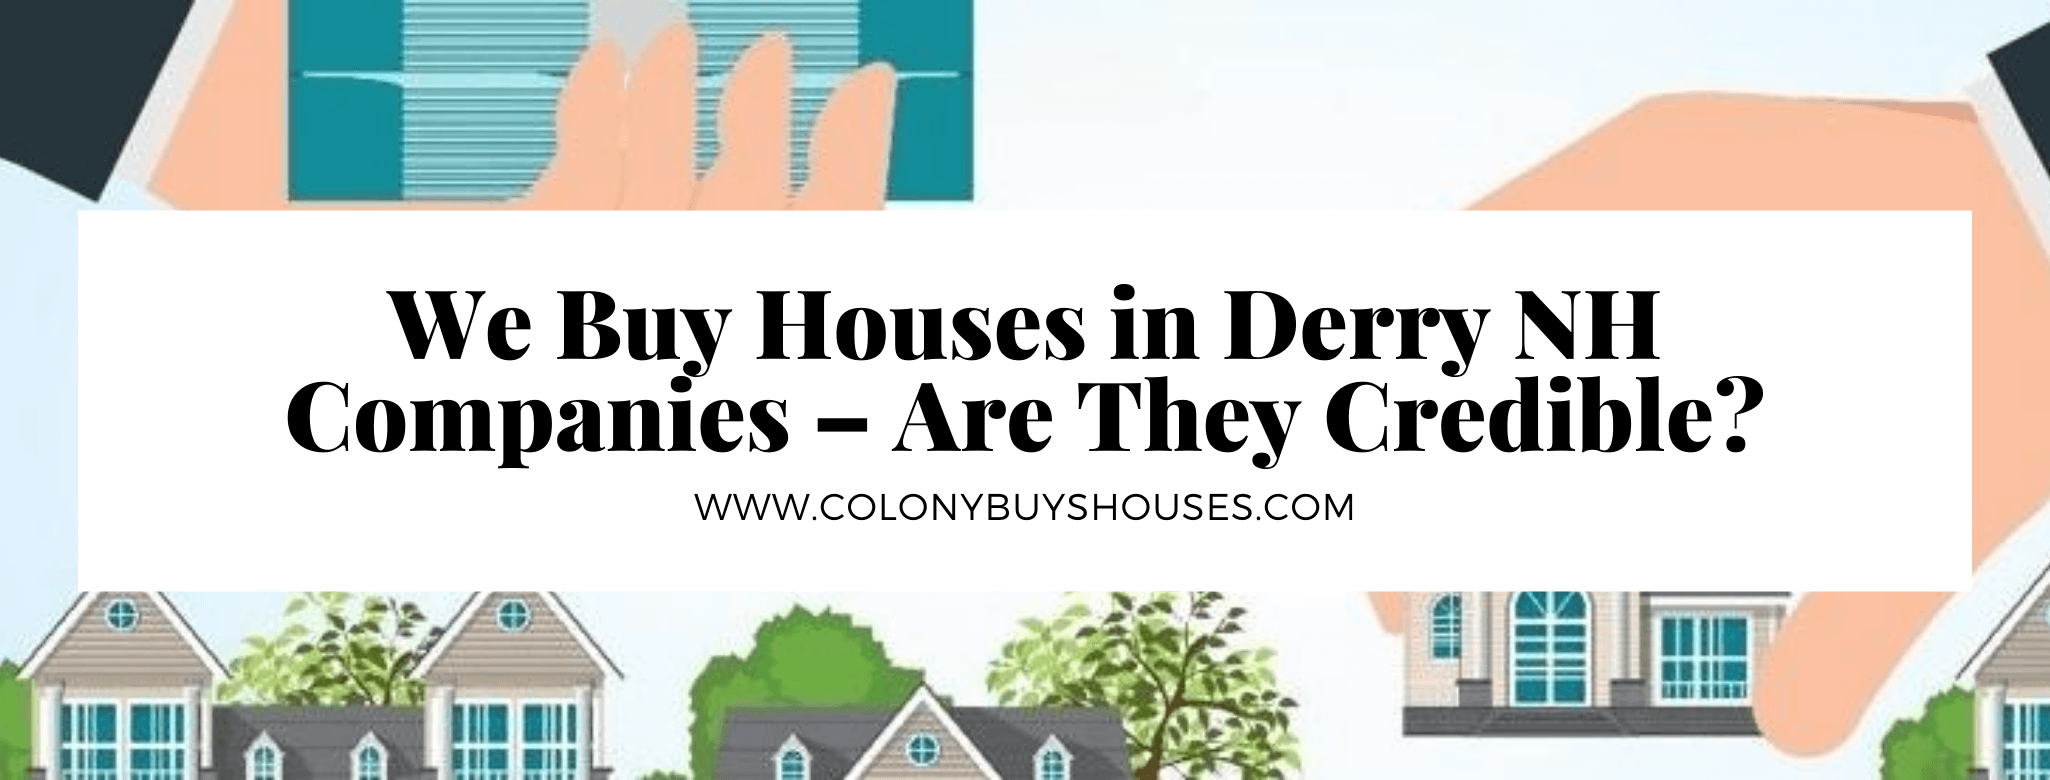 Cash for homes in Derry NH